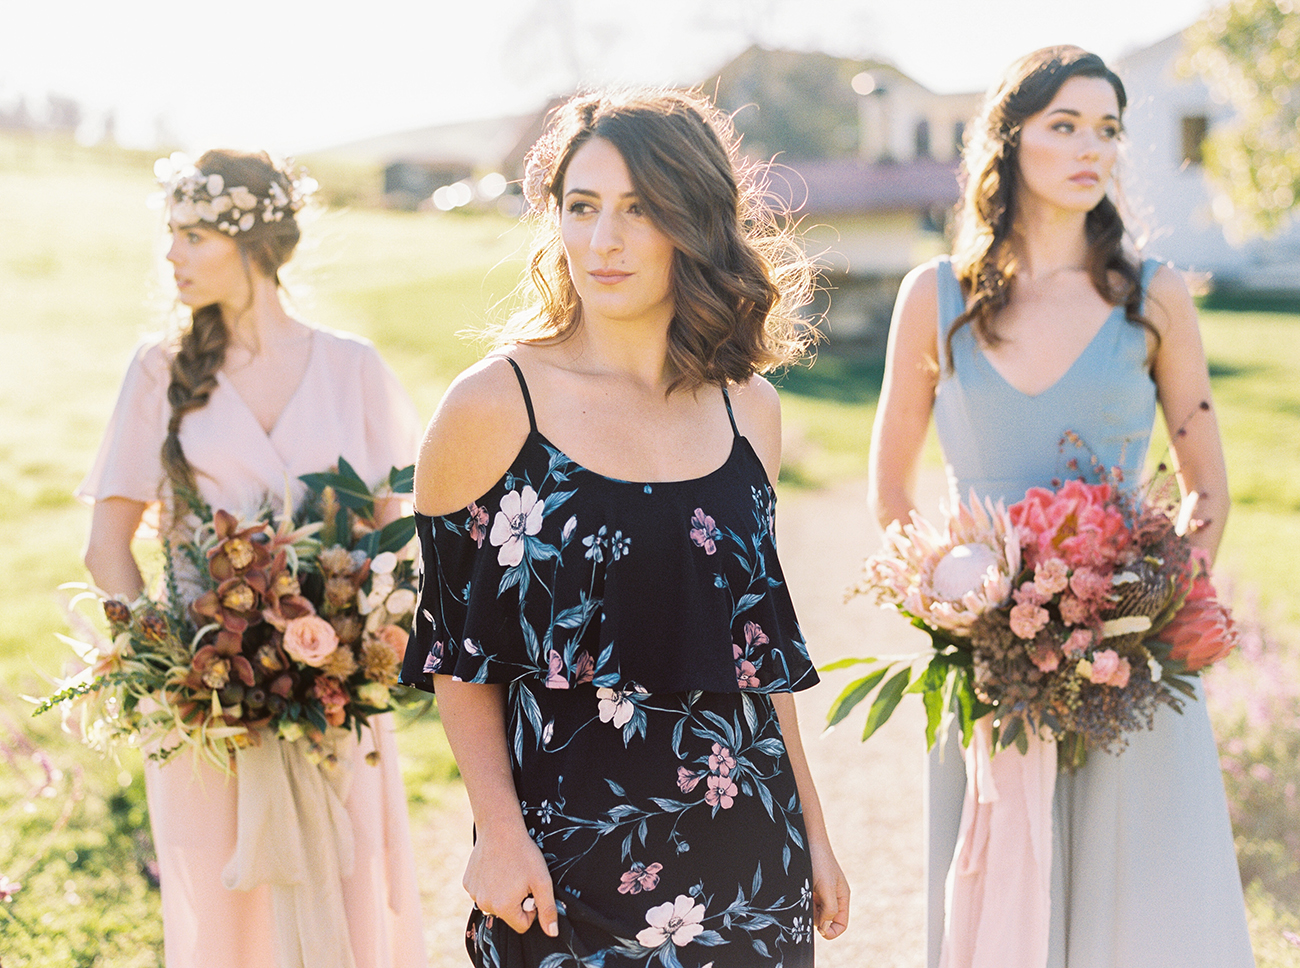 gwsxmumu bridesmaid dress collection